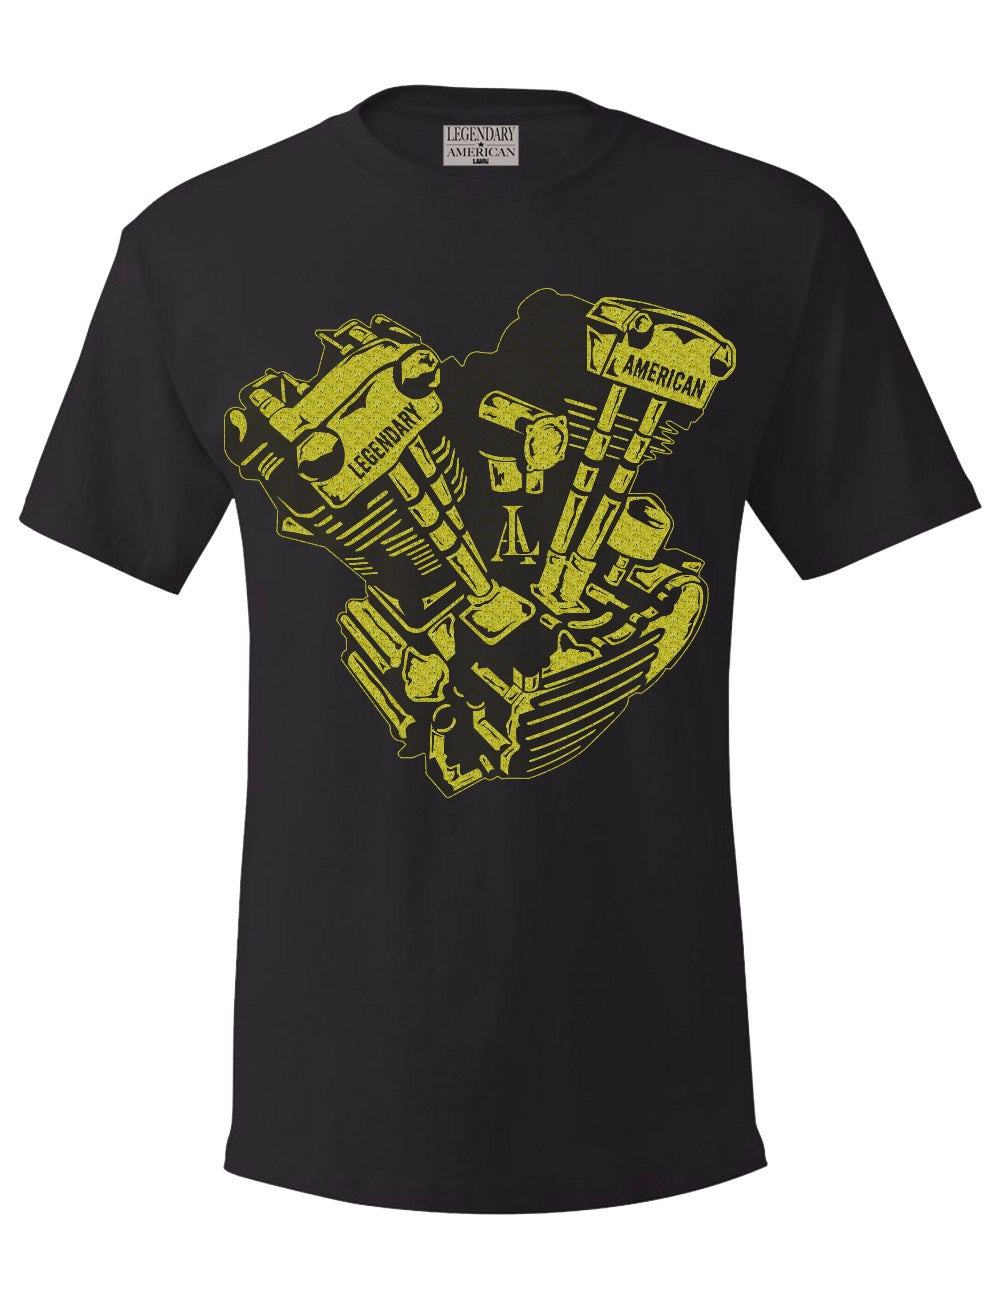 Image of Legendary American Knucklehead tee - gold print